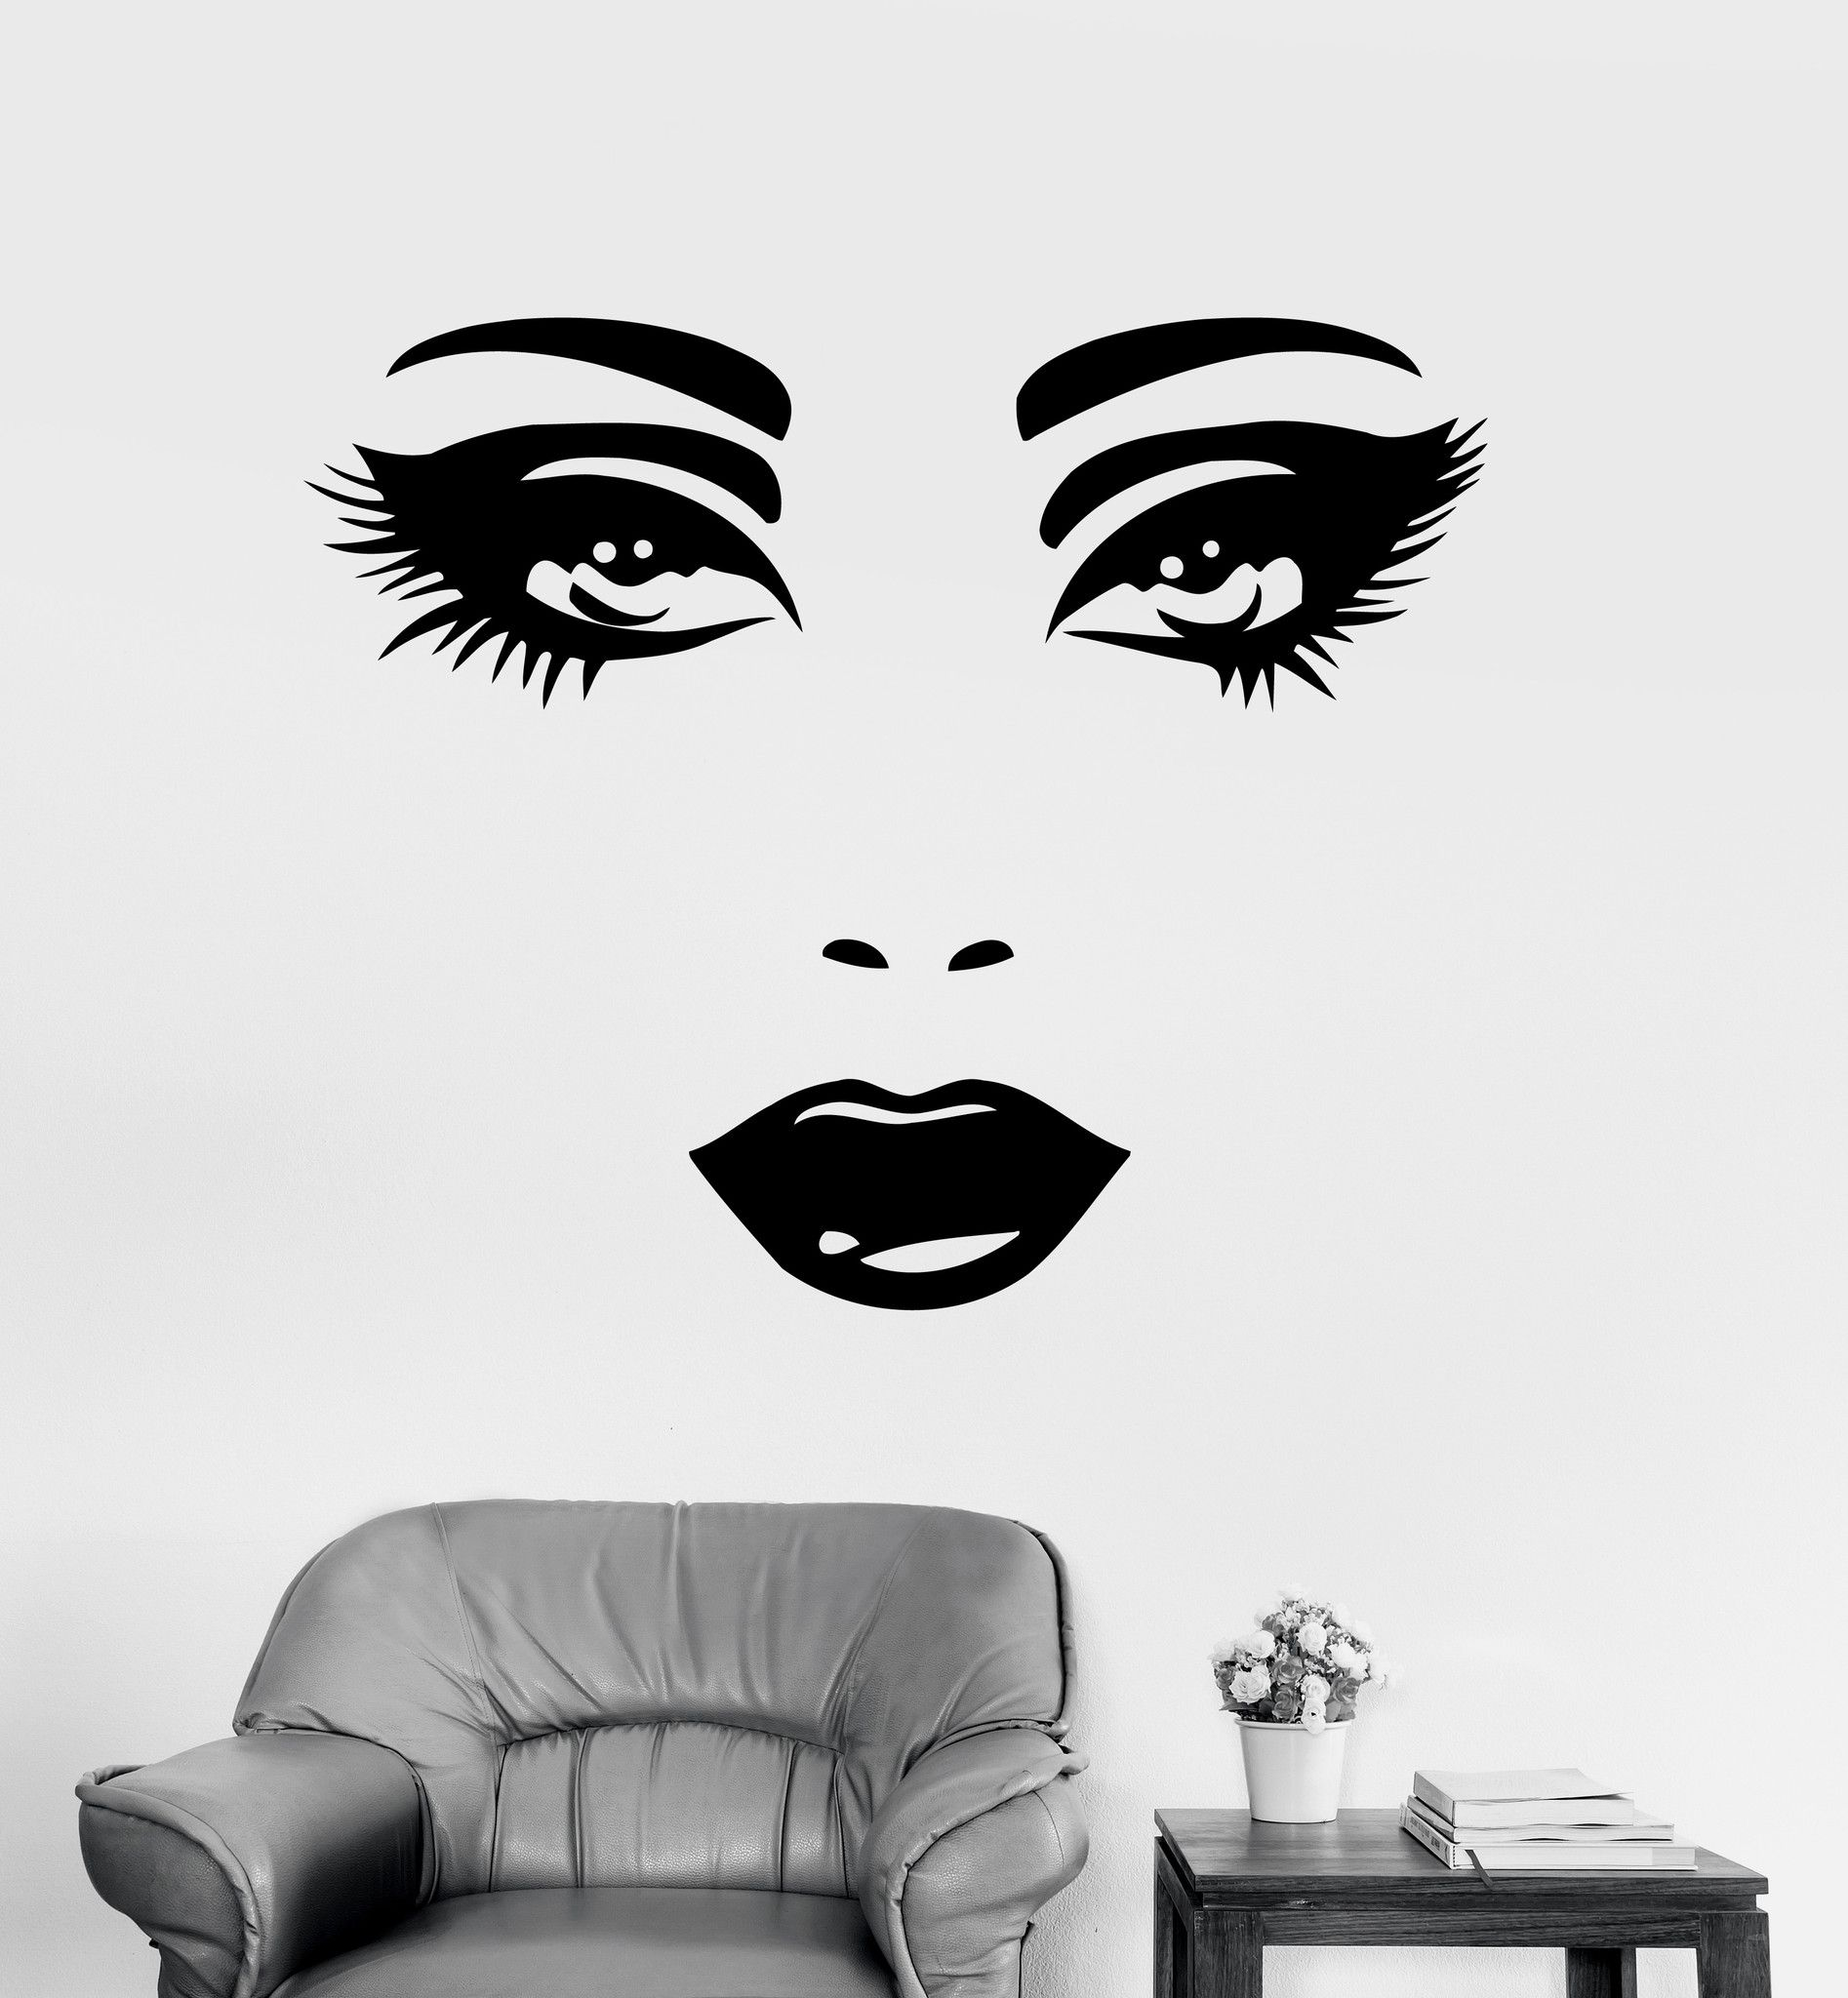 Wall decal sexy face eyes woman female vinyl sticker unique gift wall decal sexy face eyes woman female vinyl sticker unique gift z3262 amipublicfo Images